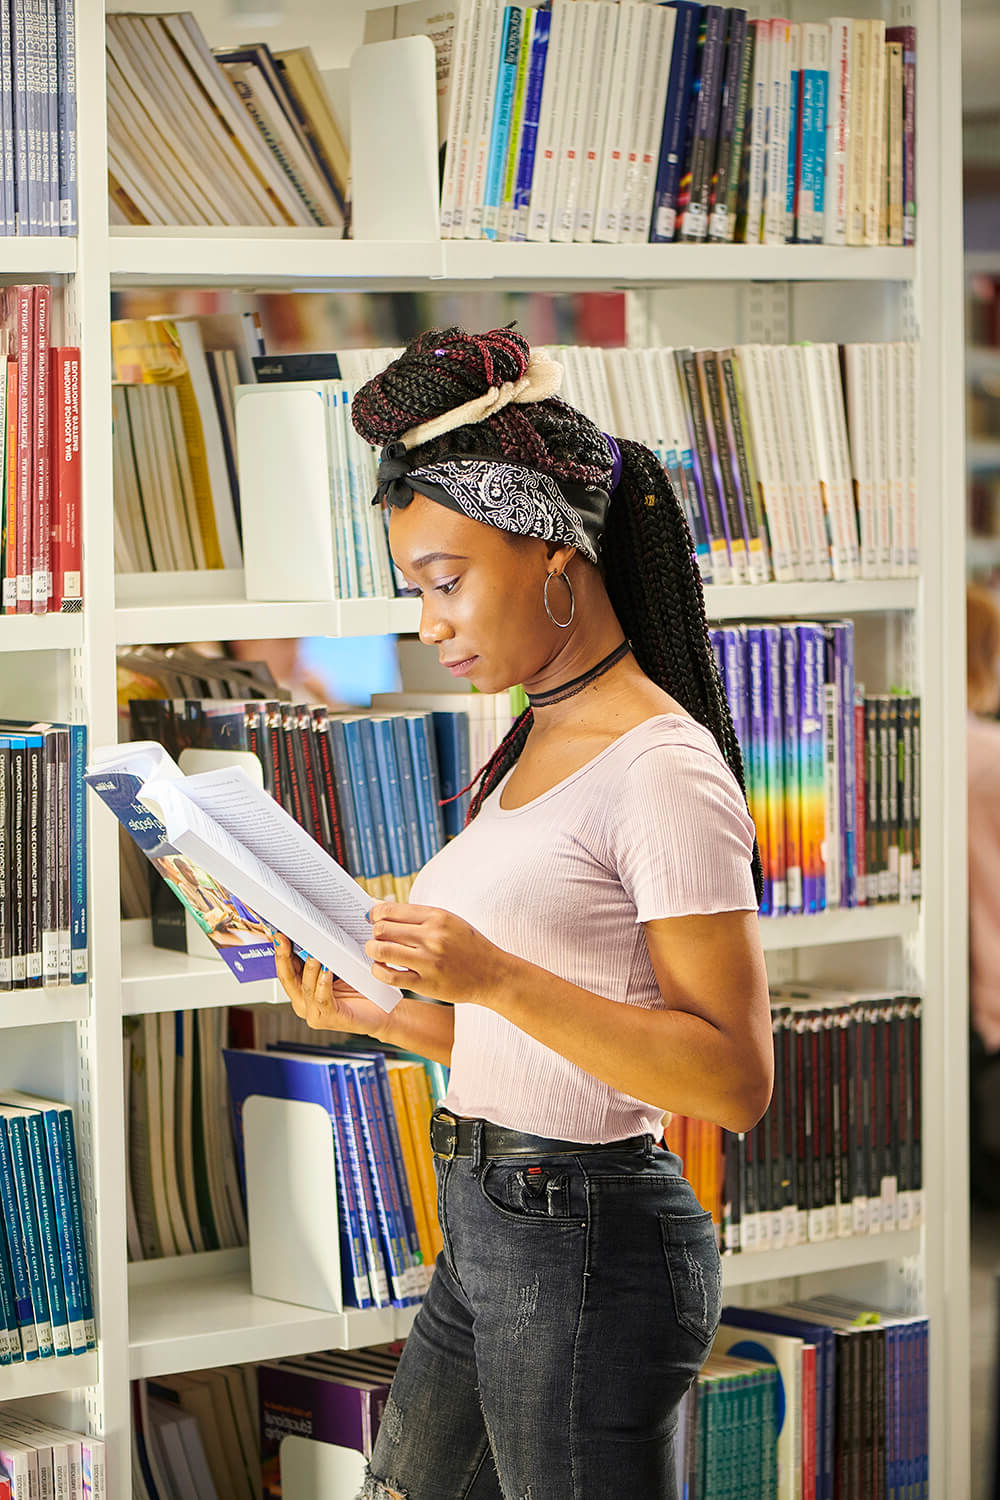 A student flicks through a book while stood near shelves of books in the University library in the Catalyst building.